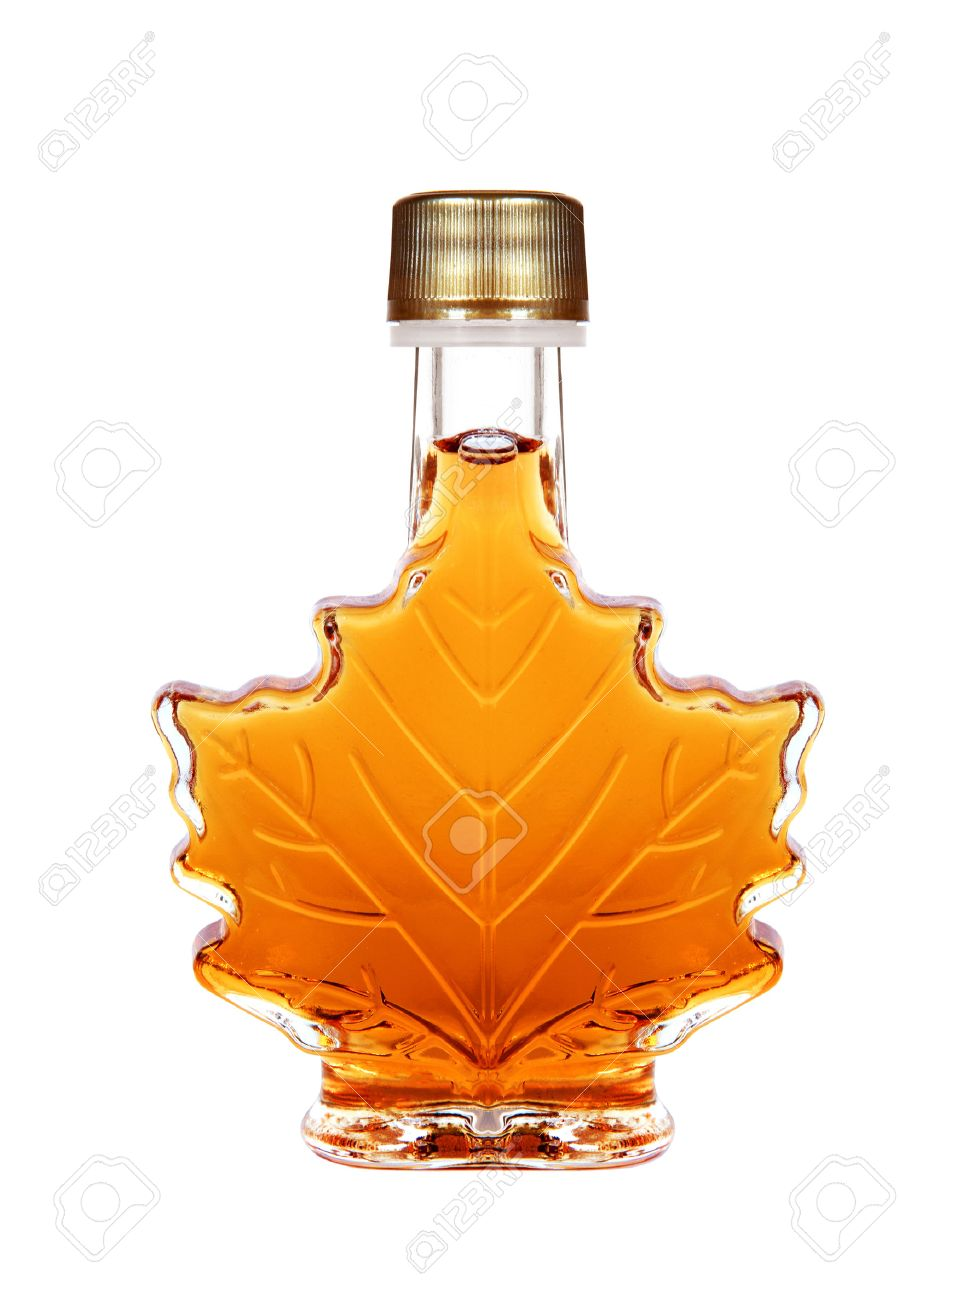 63c6cdc65a6 Maple Syrup Bottle Isolated On A White Background Stock Photo - 42391997